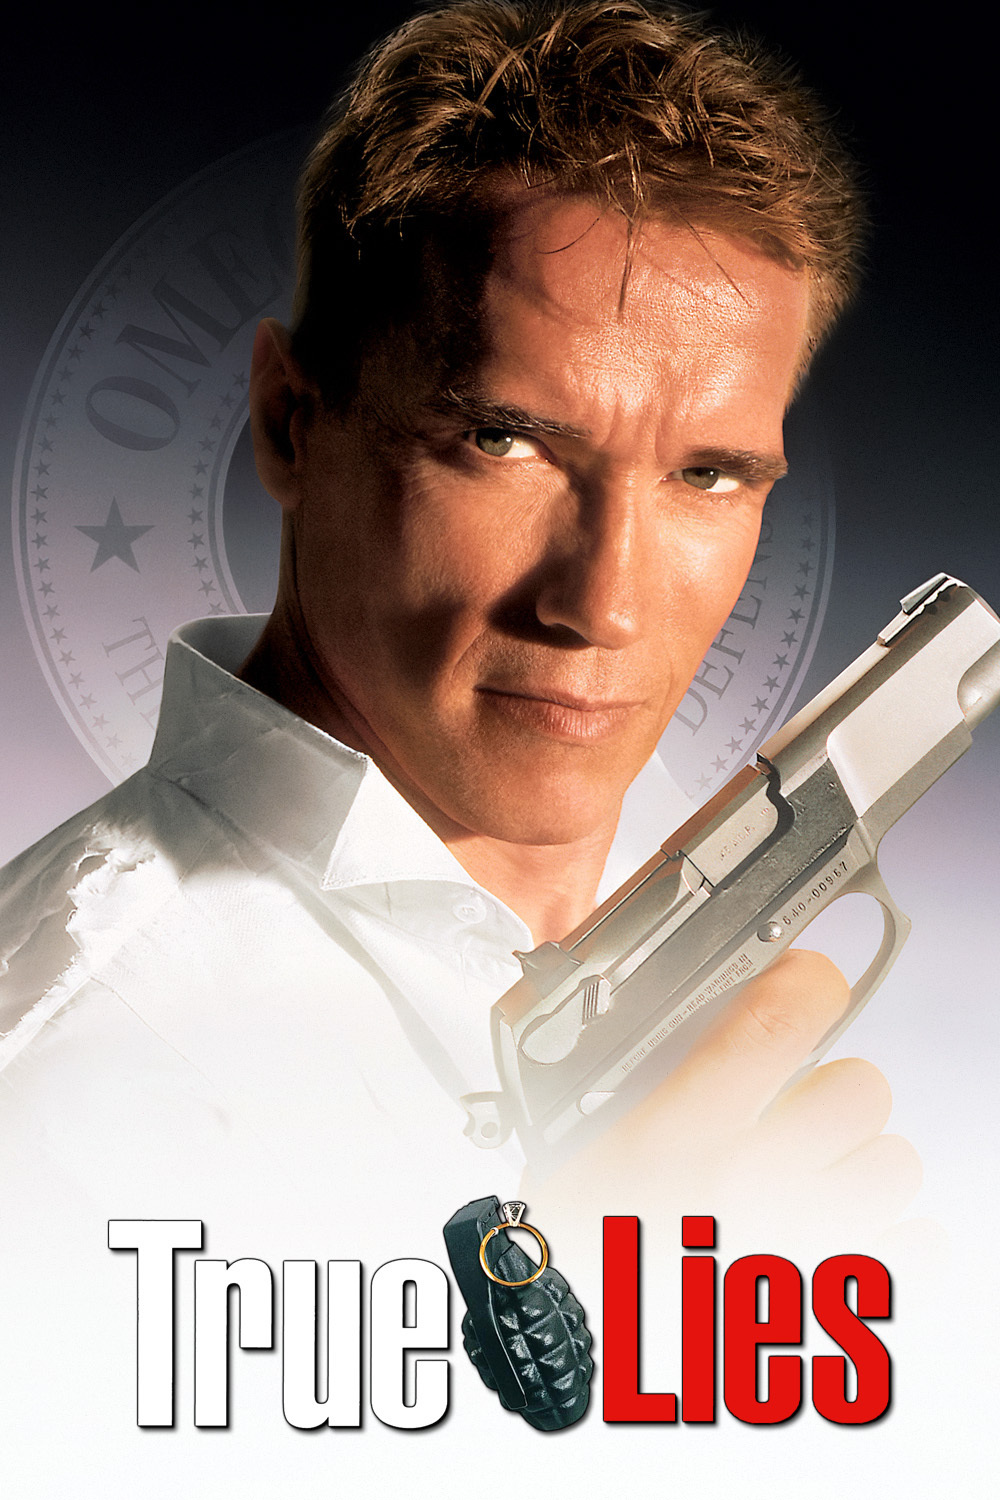 True Lies - Release Date: 1994Rating: REmi Rating: 8.5/10If you are looking for a good laugh, this movie is a must watch! Spy, Harry Tasker, is perceived by his family as a bland salesman. When his wife, Helen (played by the OG Jamie Lee Curtis), feels neglected by her husband and starts to do a little digging, things get interesting very quickly. Watch this thriller (and in my opinion comedy) to see what happens to their marriage and an inside view in the life of this spy.